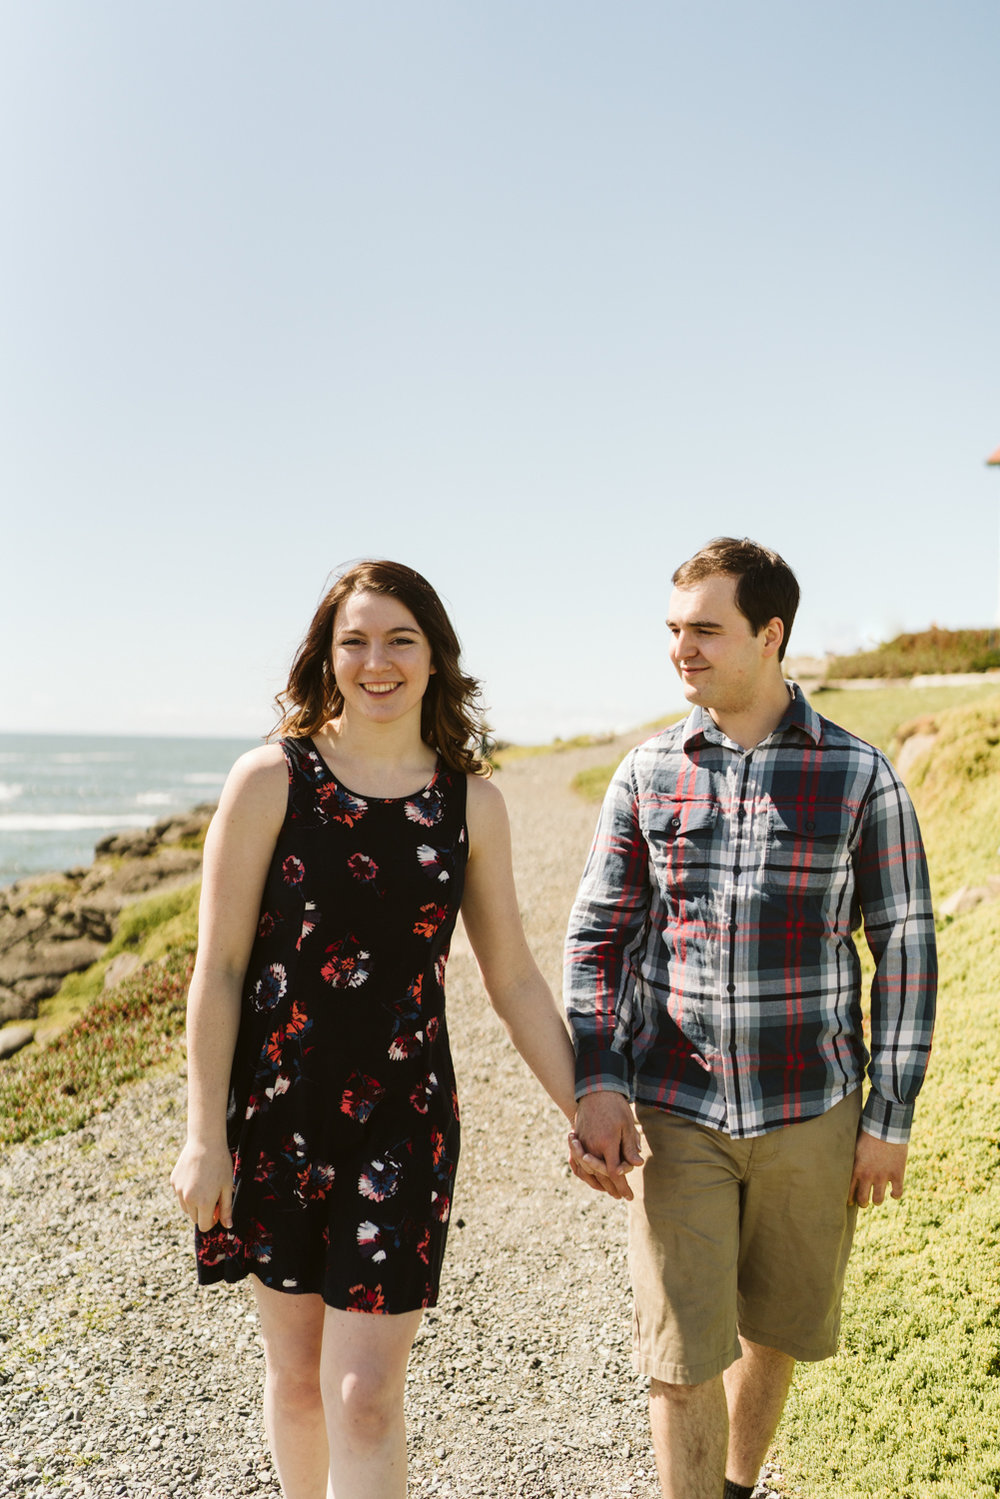 April Yentas Photography - Bonzai & Alex-9.jpg